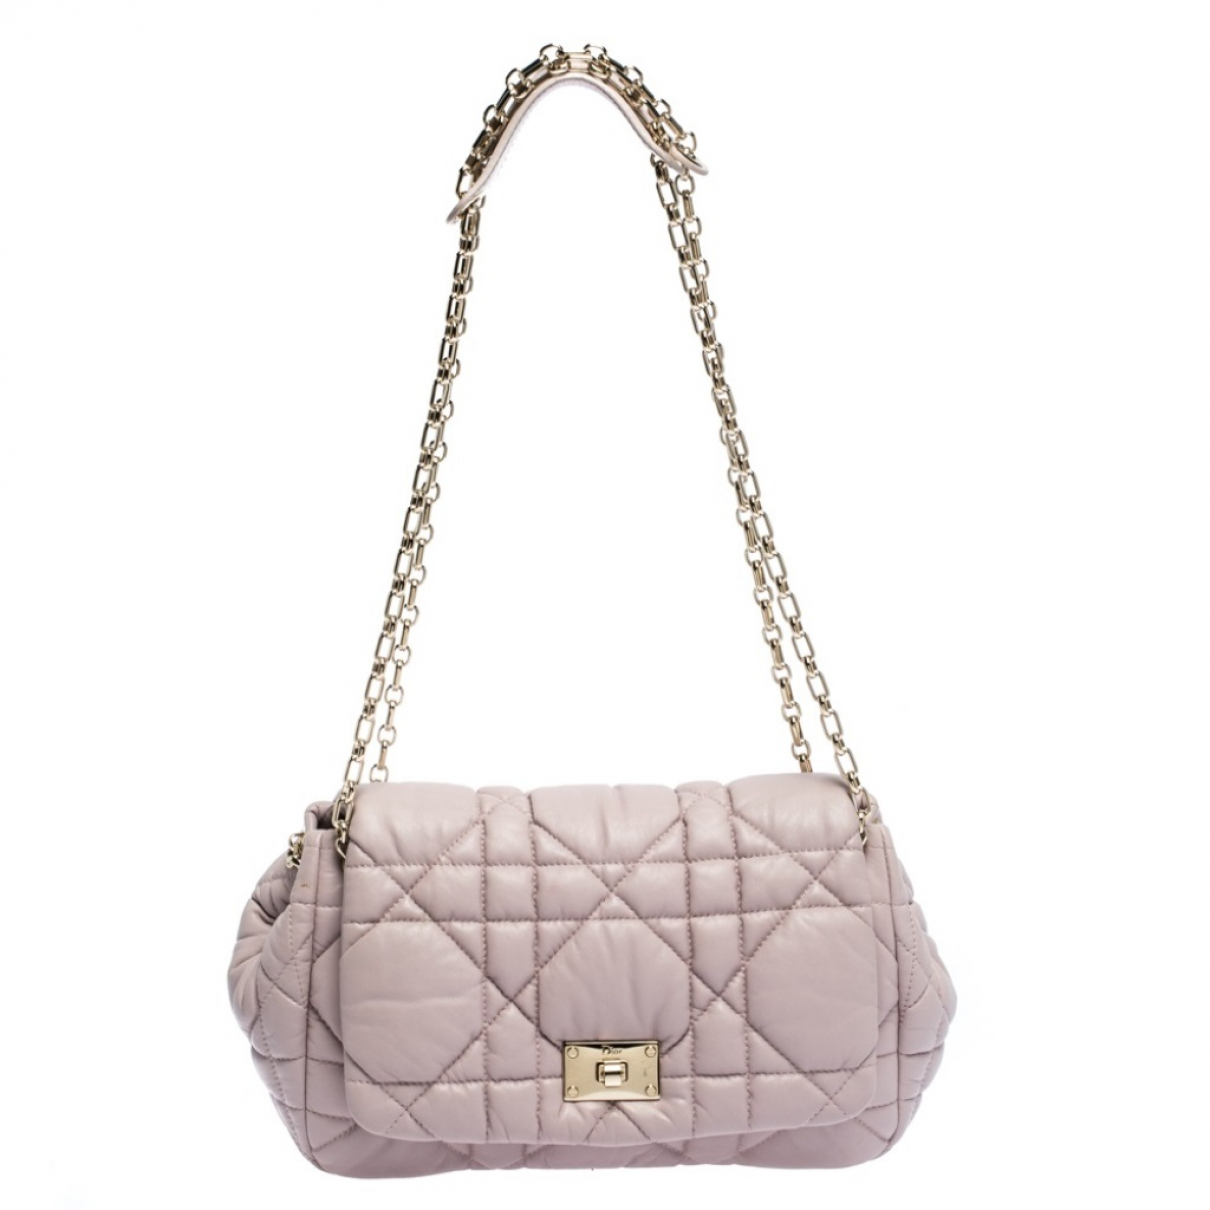 Dior N Pink Leather handbag for Women N